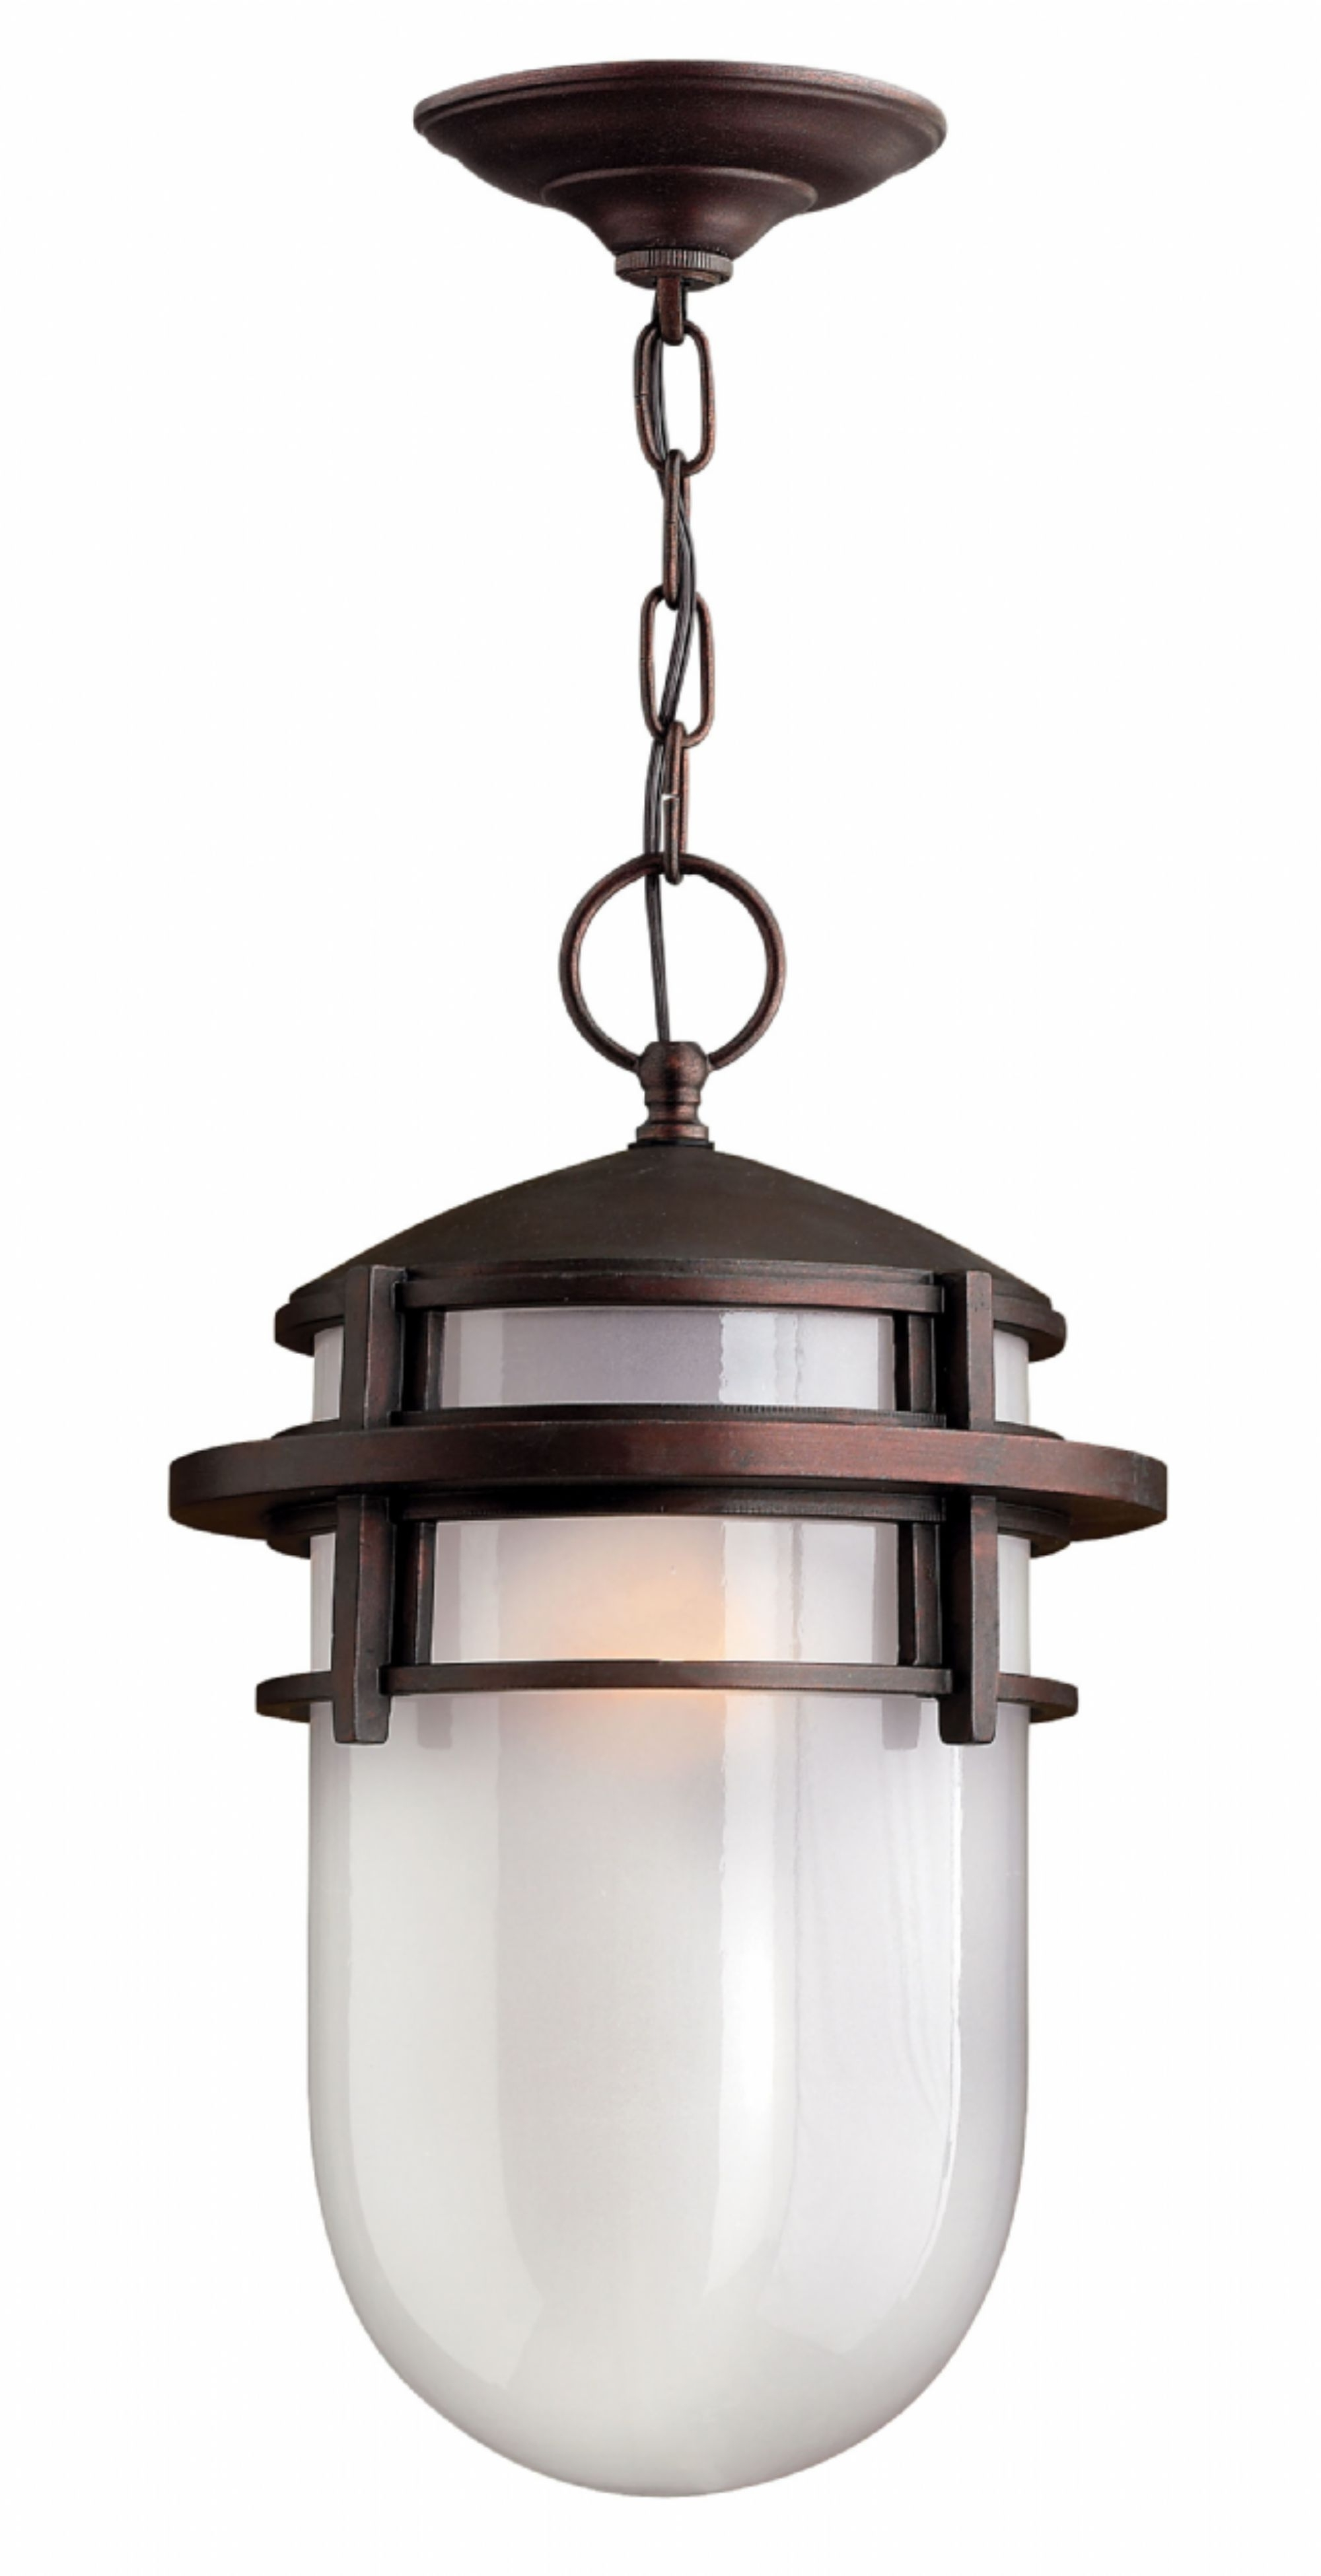 Hinkley Outdoor Hanging Lights With Best And Newest Victorian Bronze Reef > Exterior Ceiling Mount (View 18 of 20)